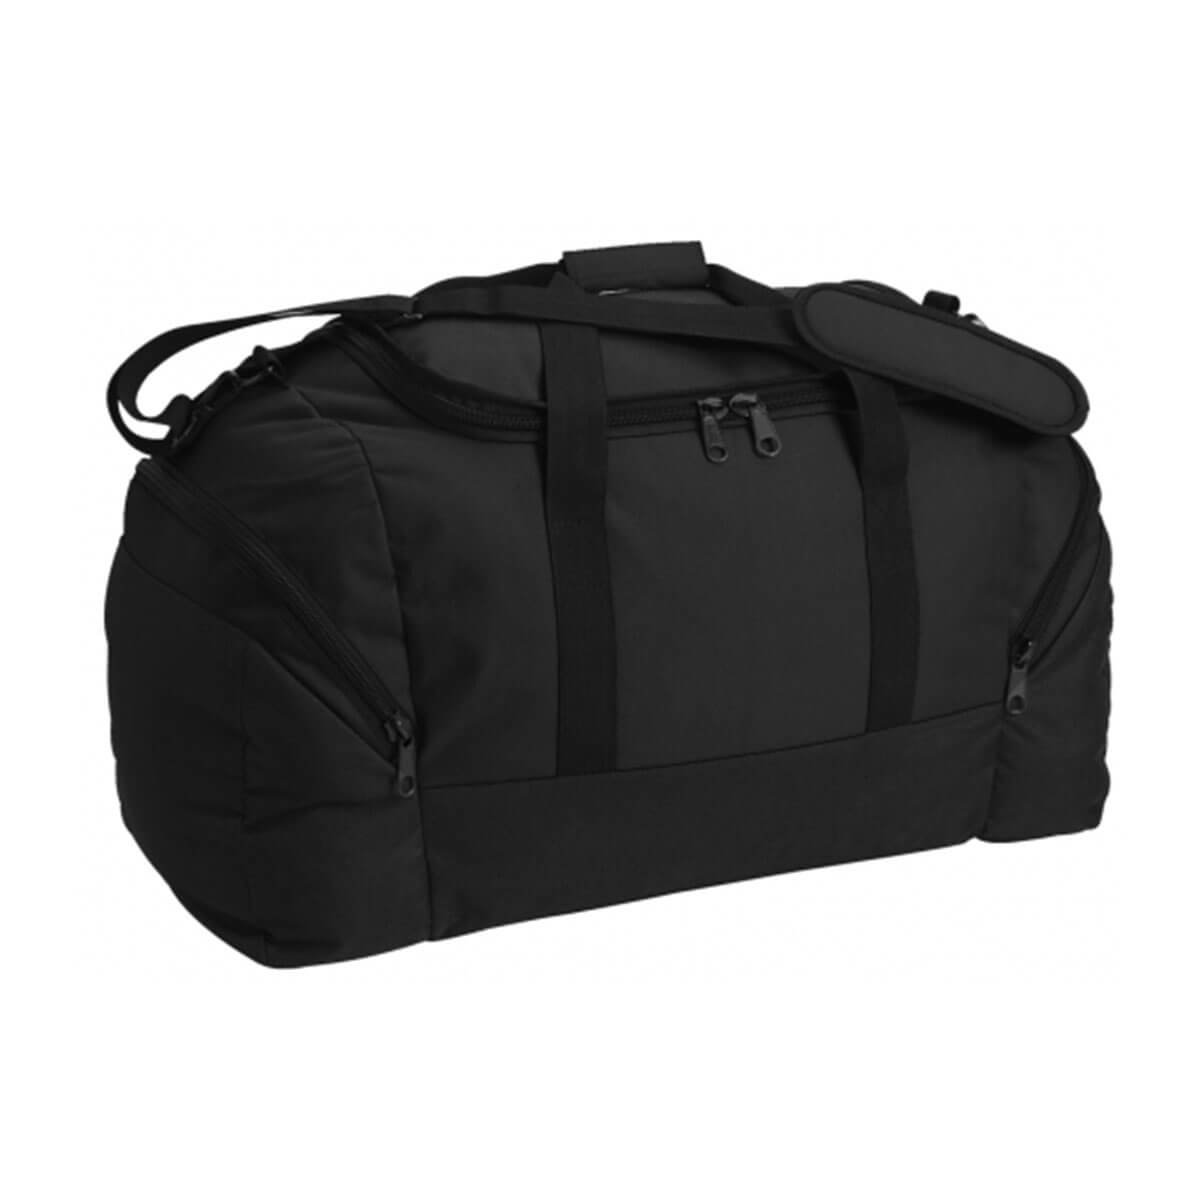 Team Sports Bag-Black